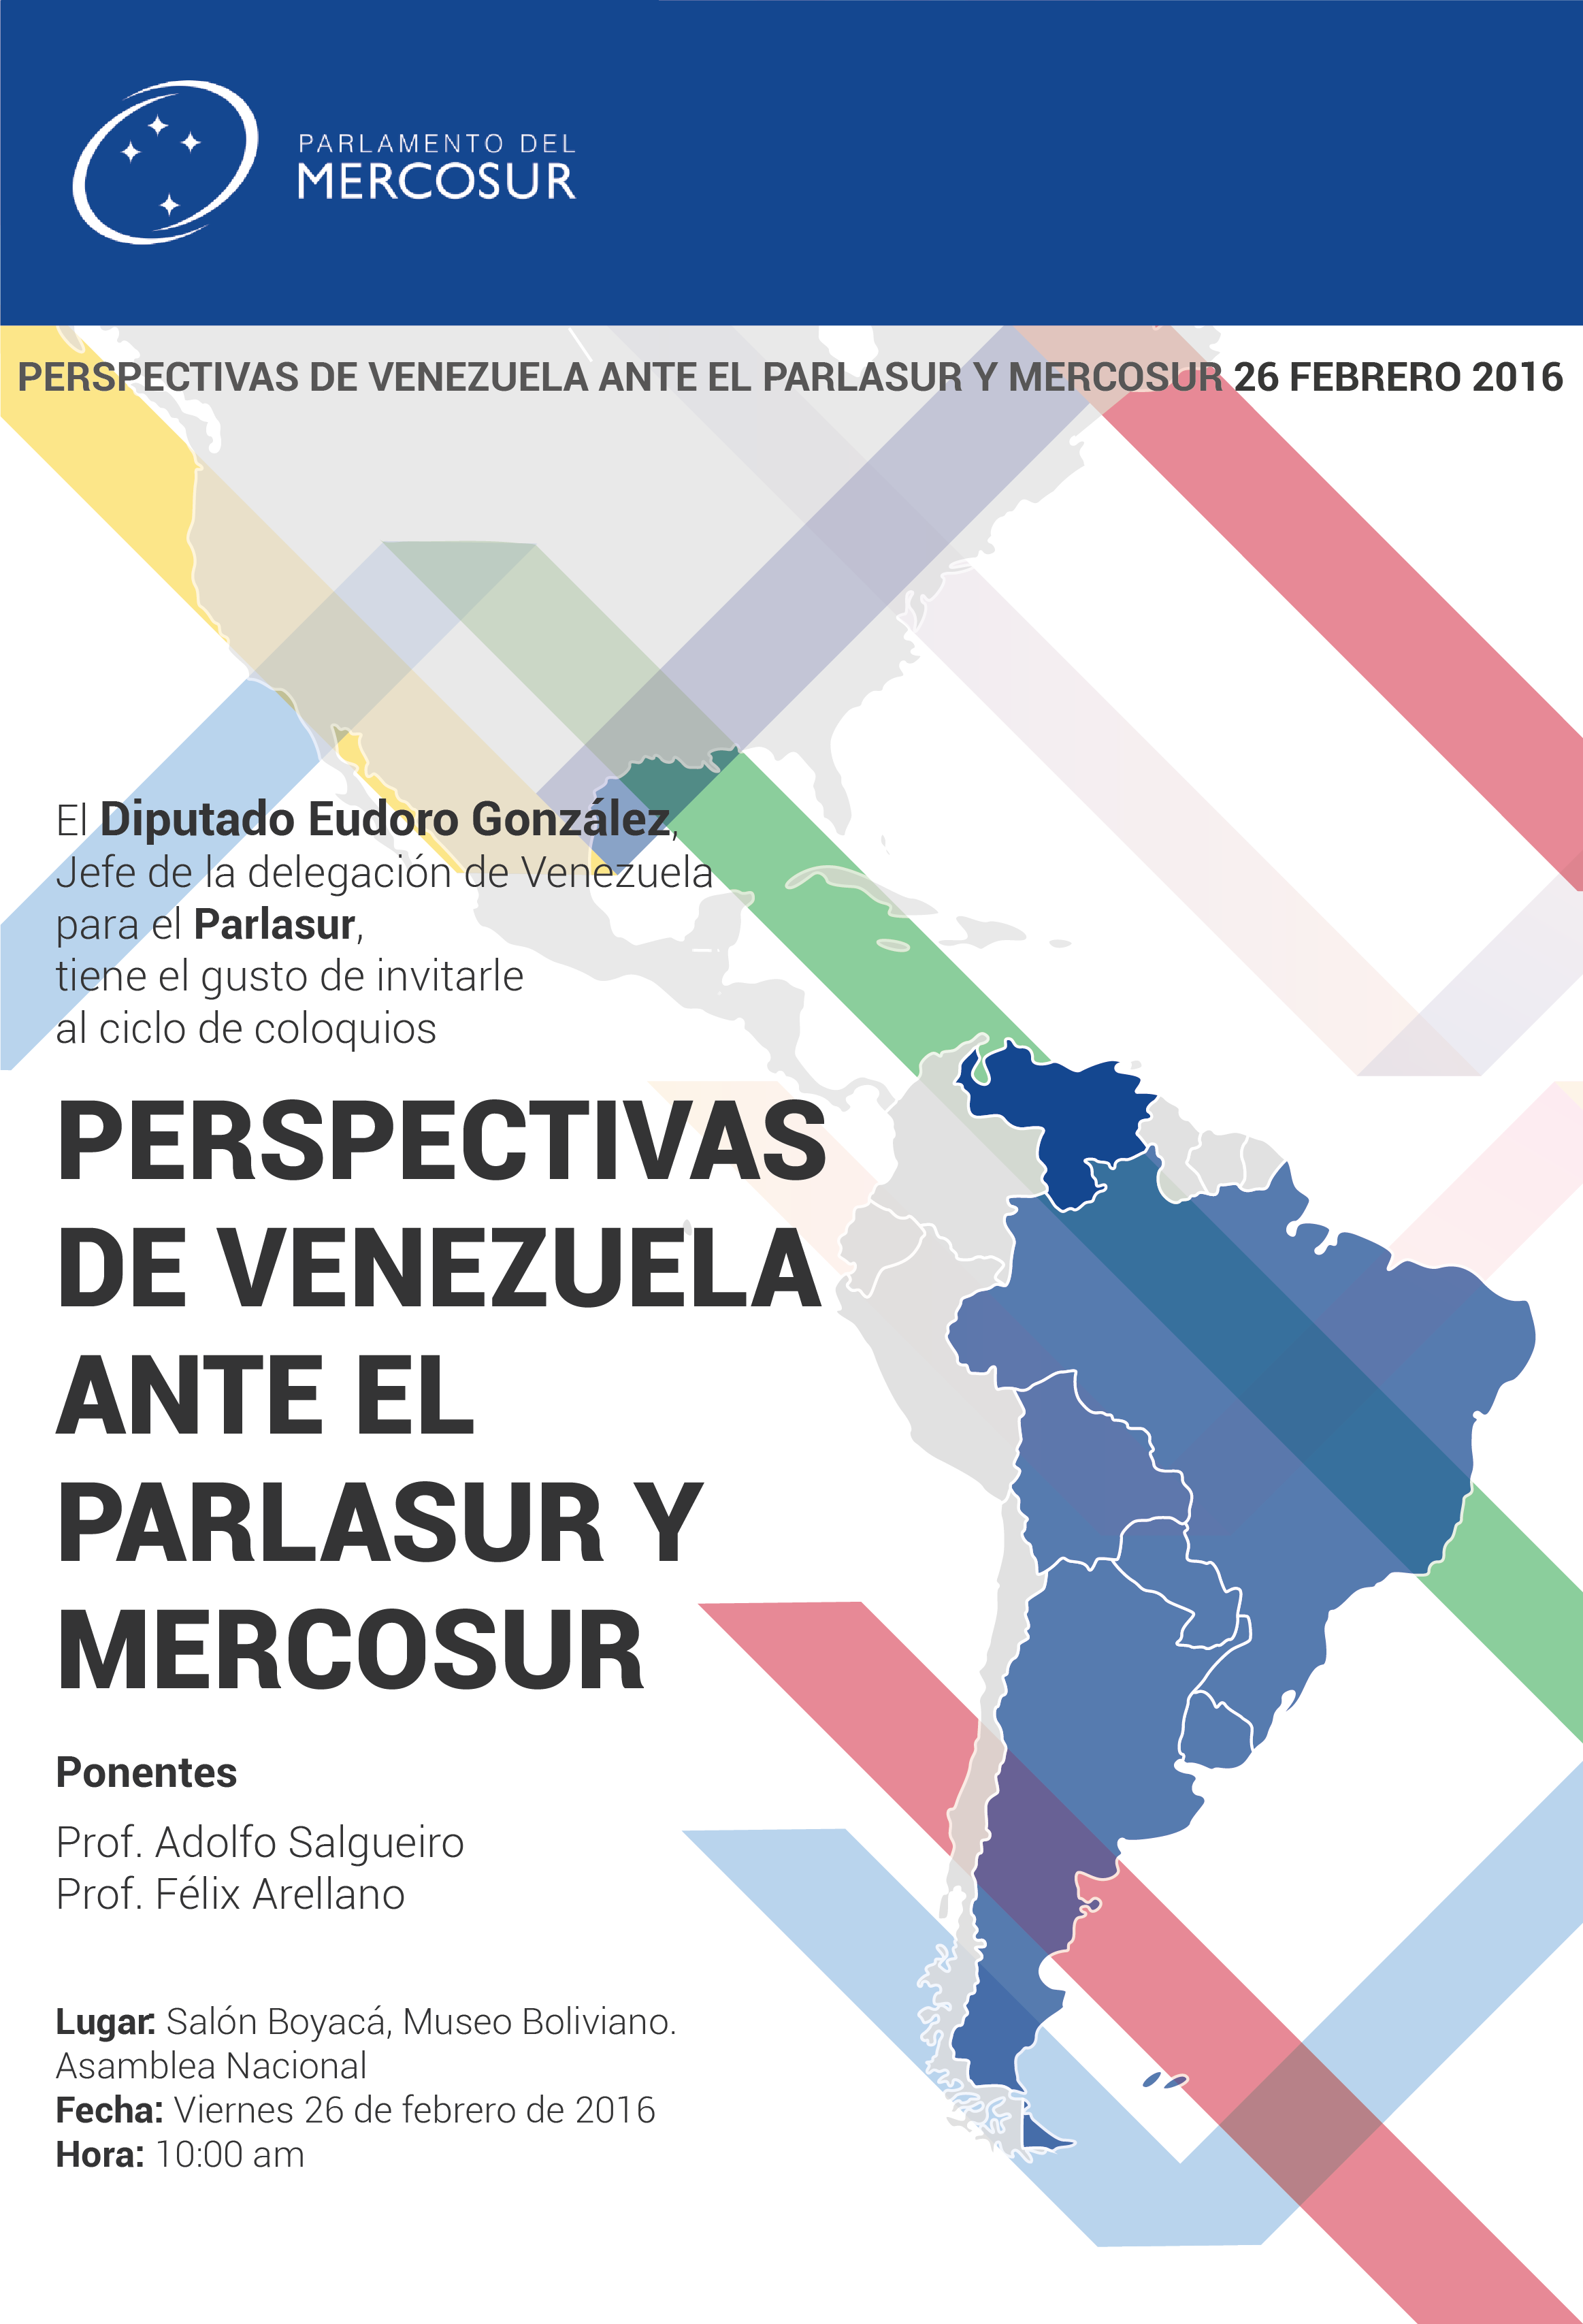 Poster for Mercosur Parliament event